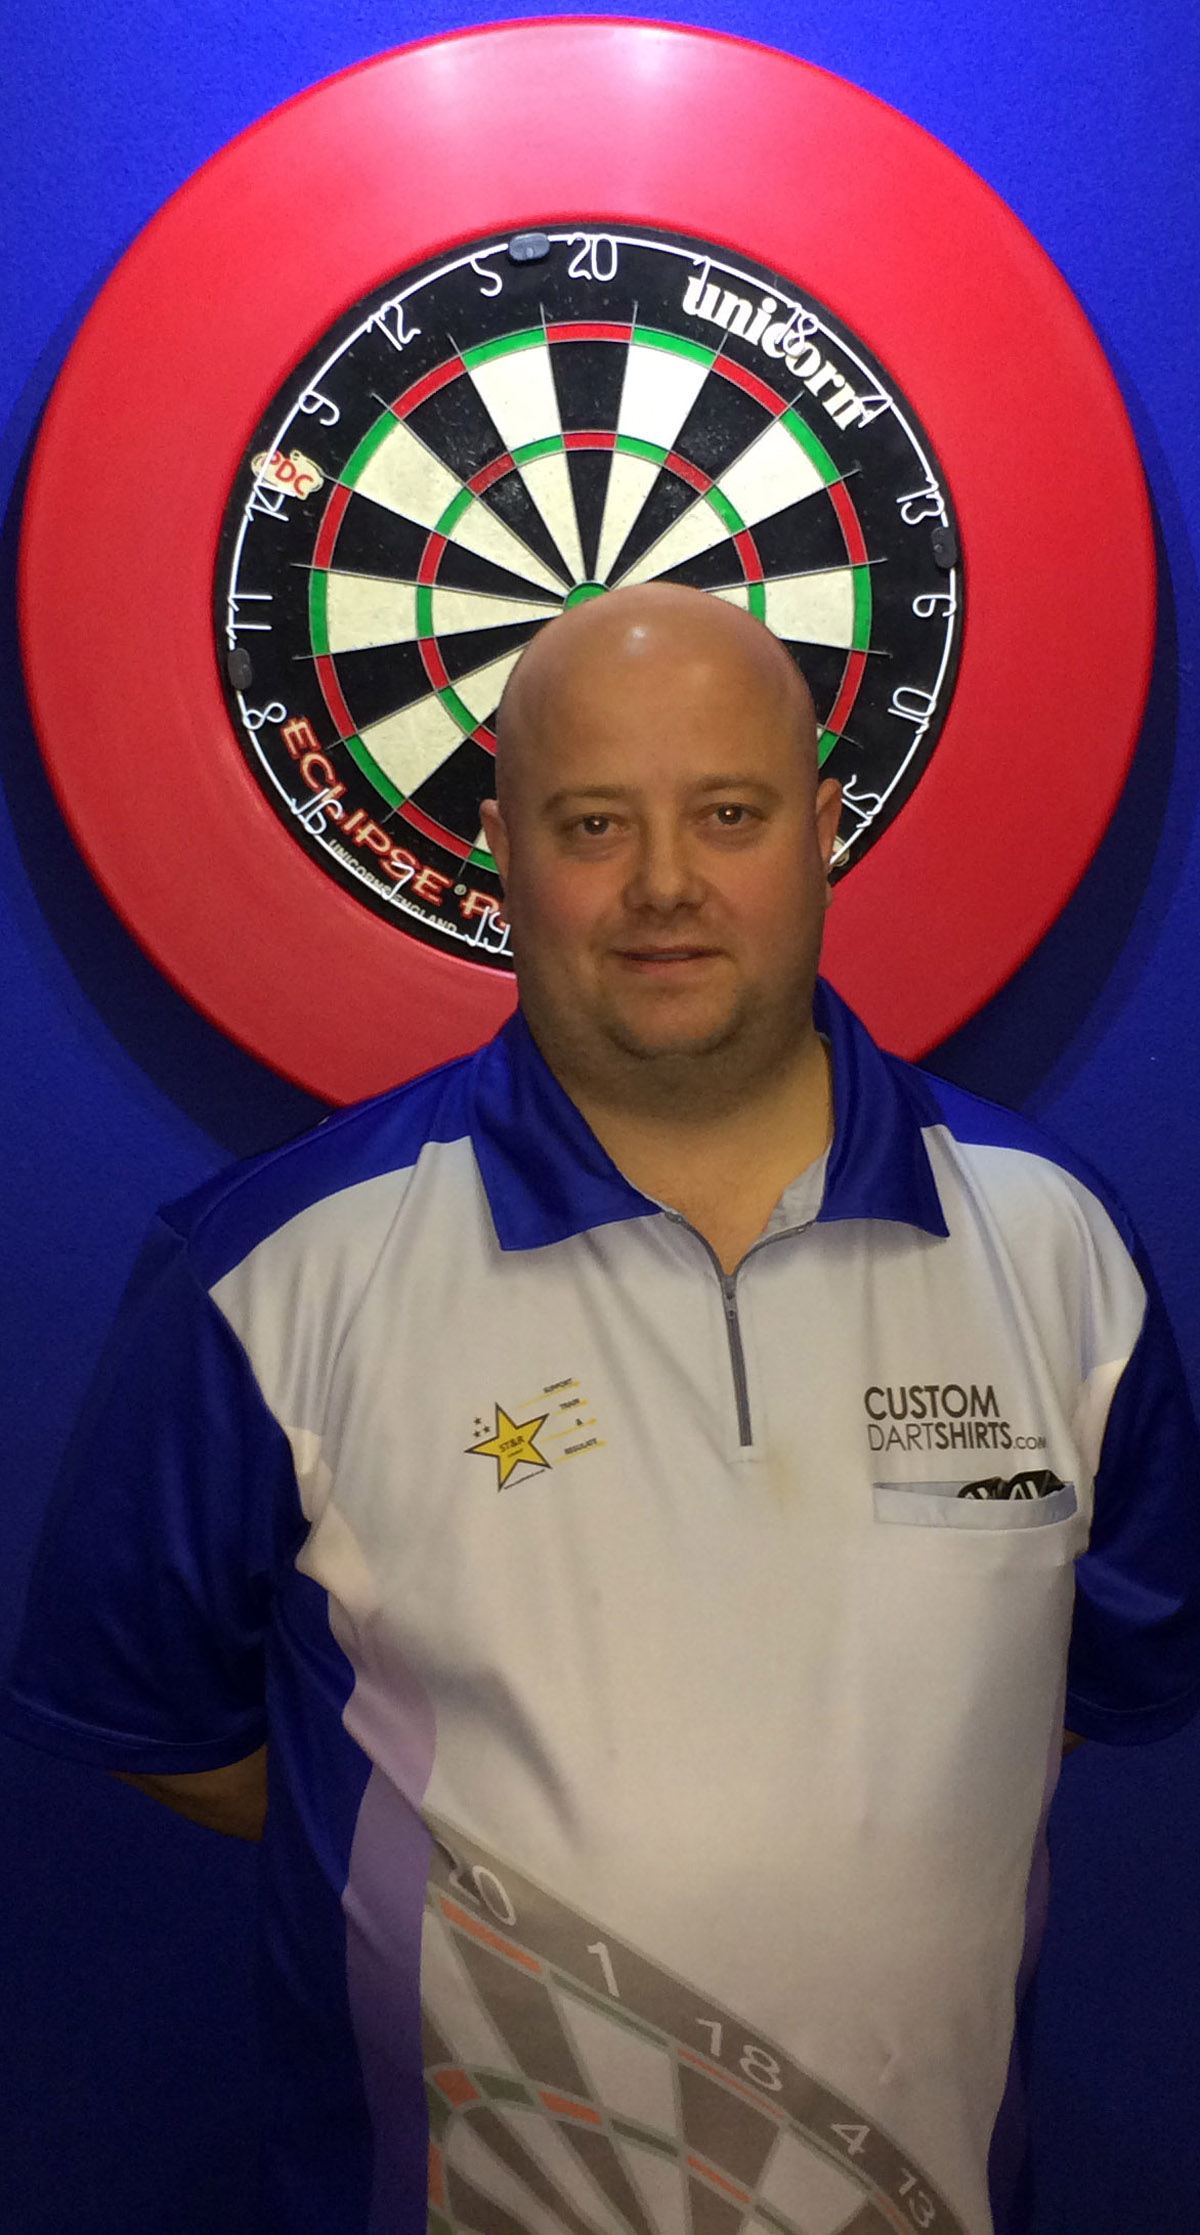 Dave Bird, from Winsford, is all smiles after winning a Professional Darts Corporation tour card. Picture: DAVE ALLEN/PDC